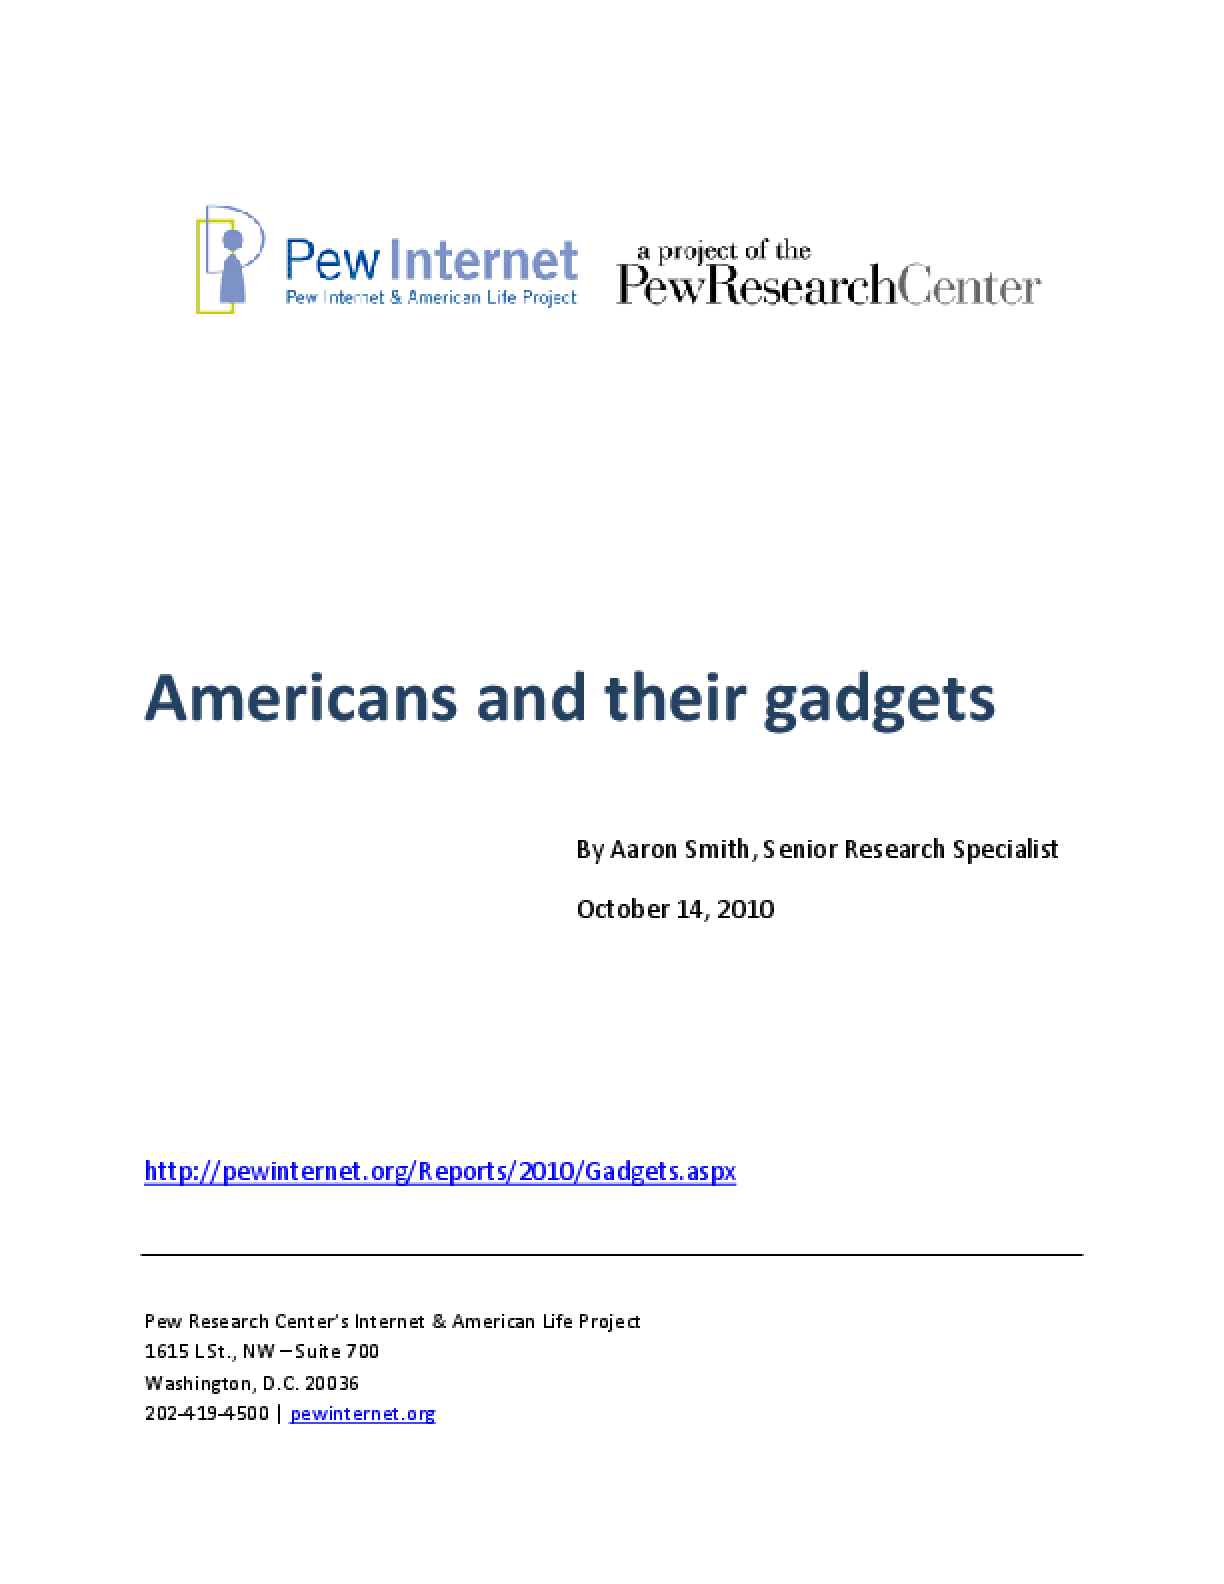 Americans and Their Gadgets